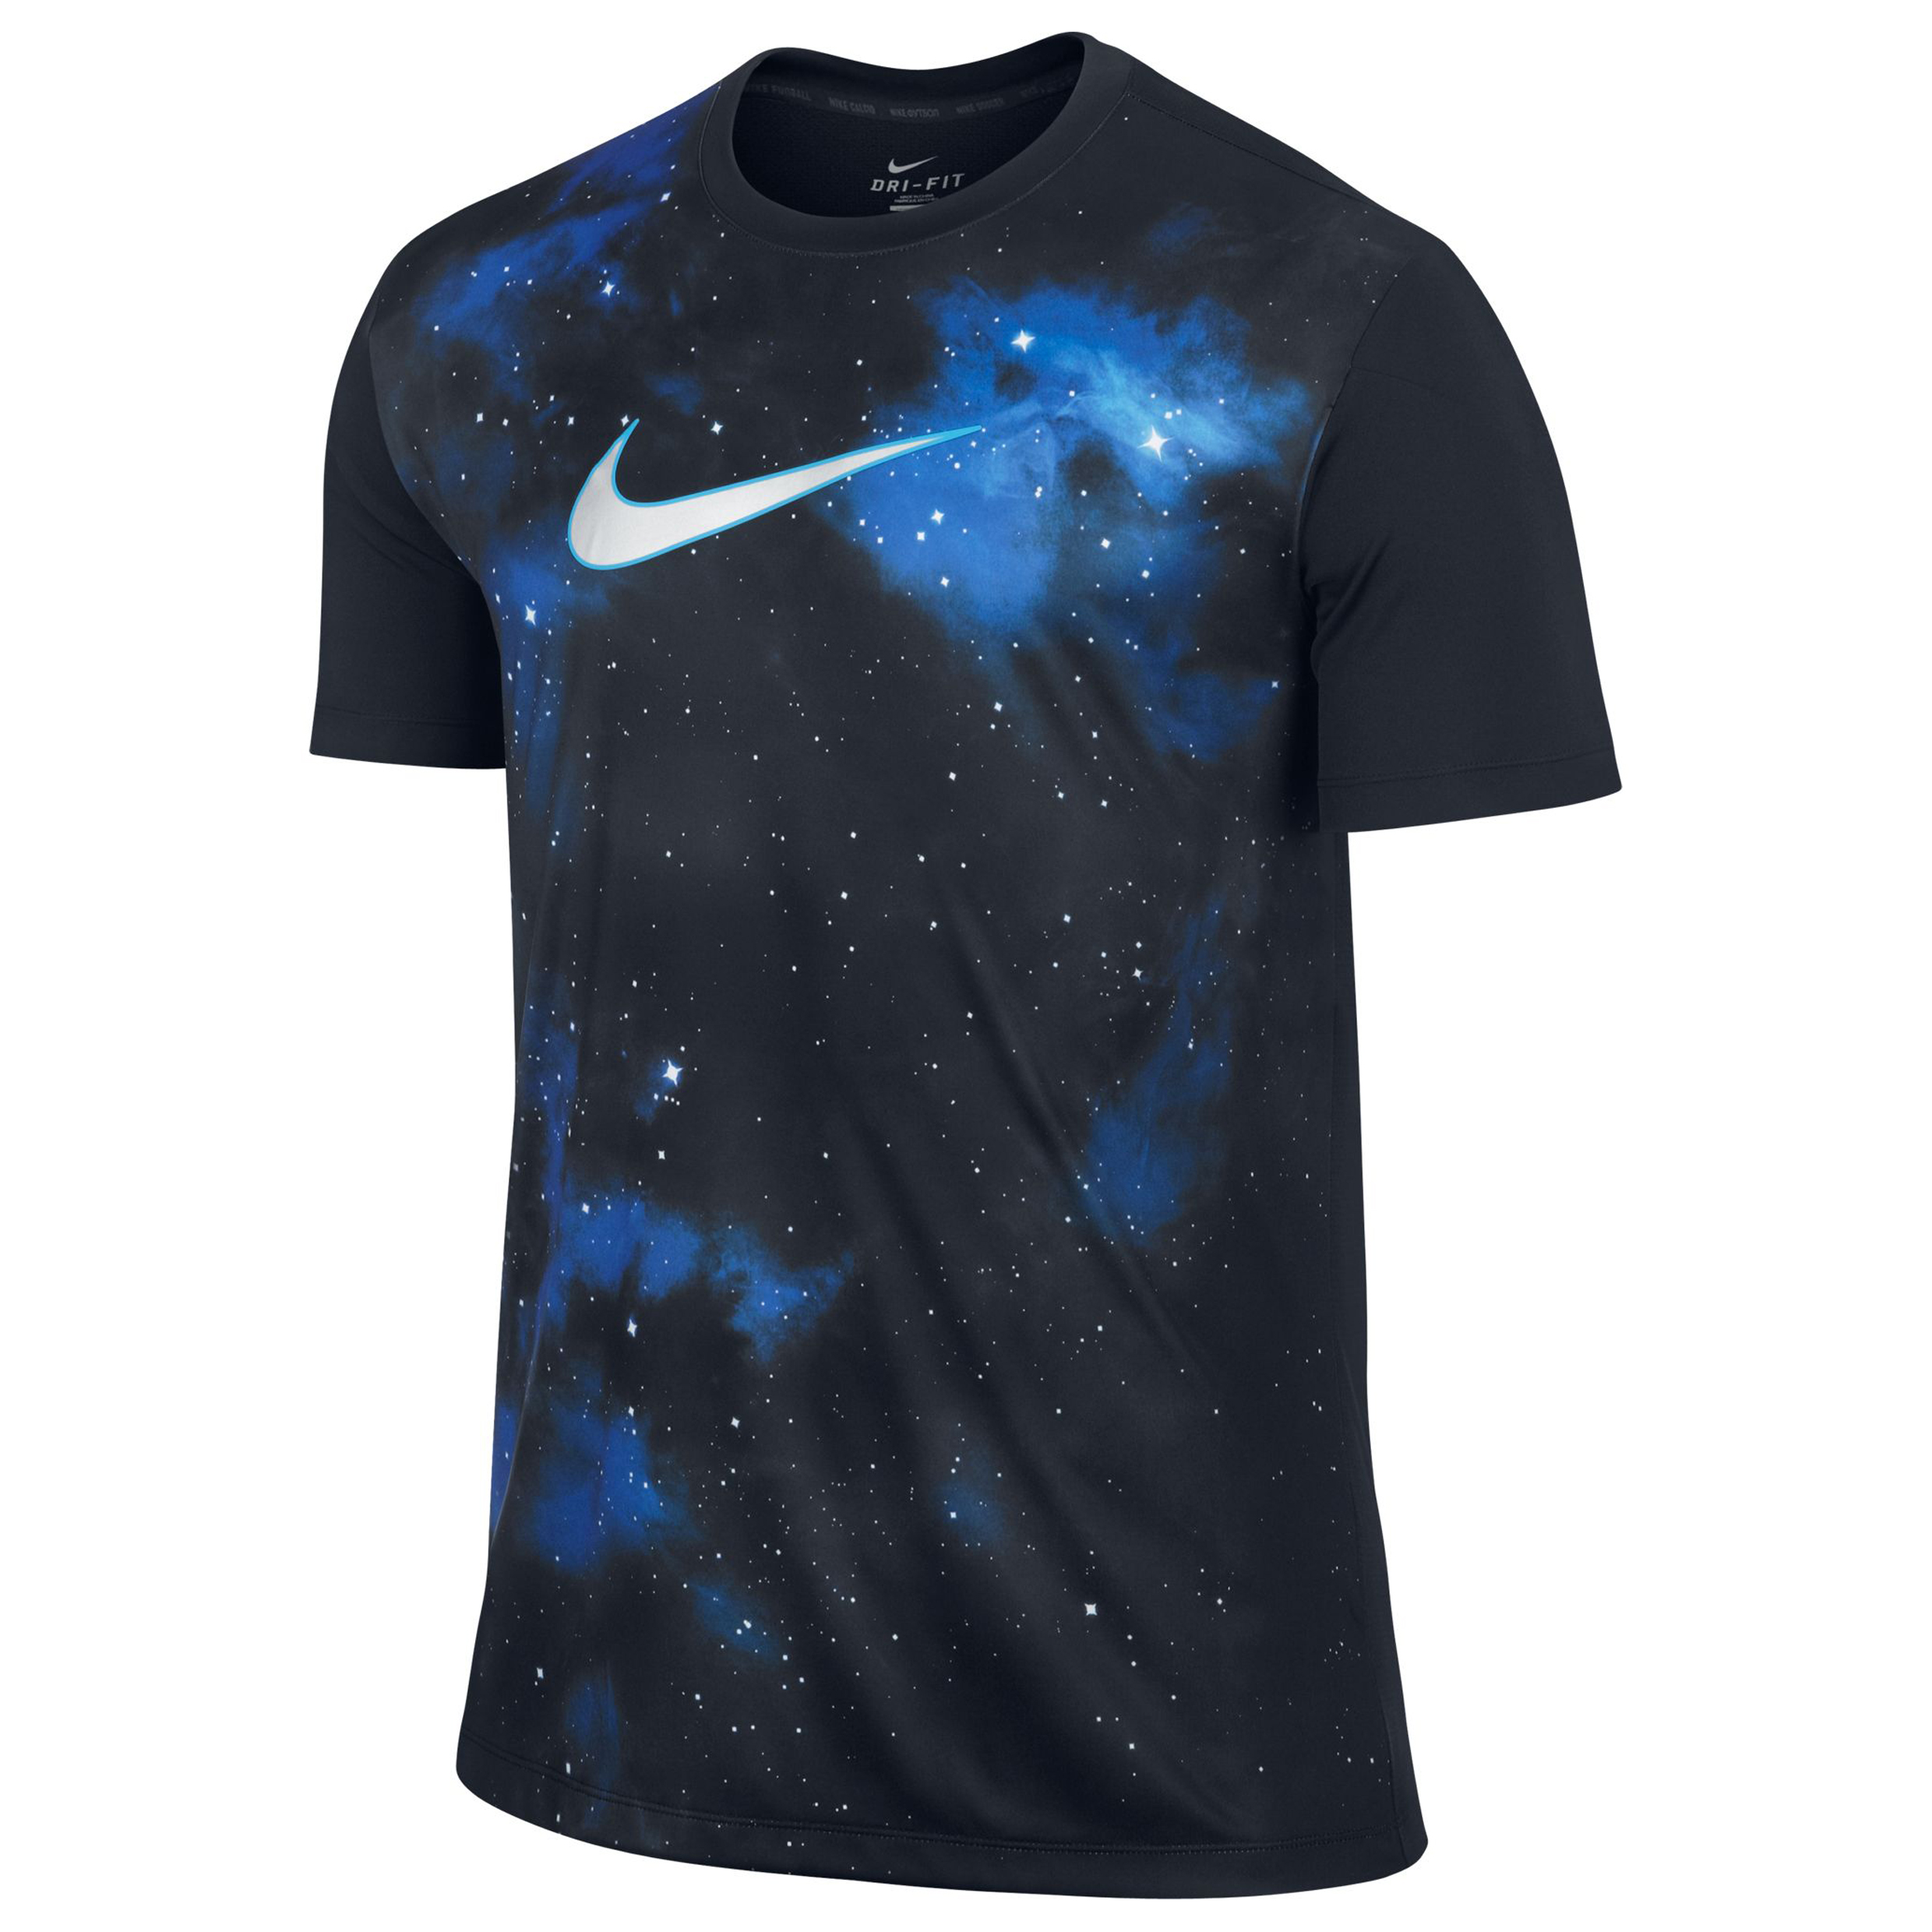 Nike CR Graphic Training Top - Dark Obsidian/Metallic Silver Navy